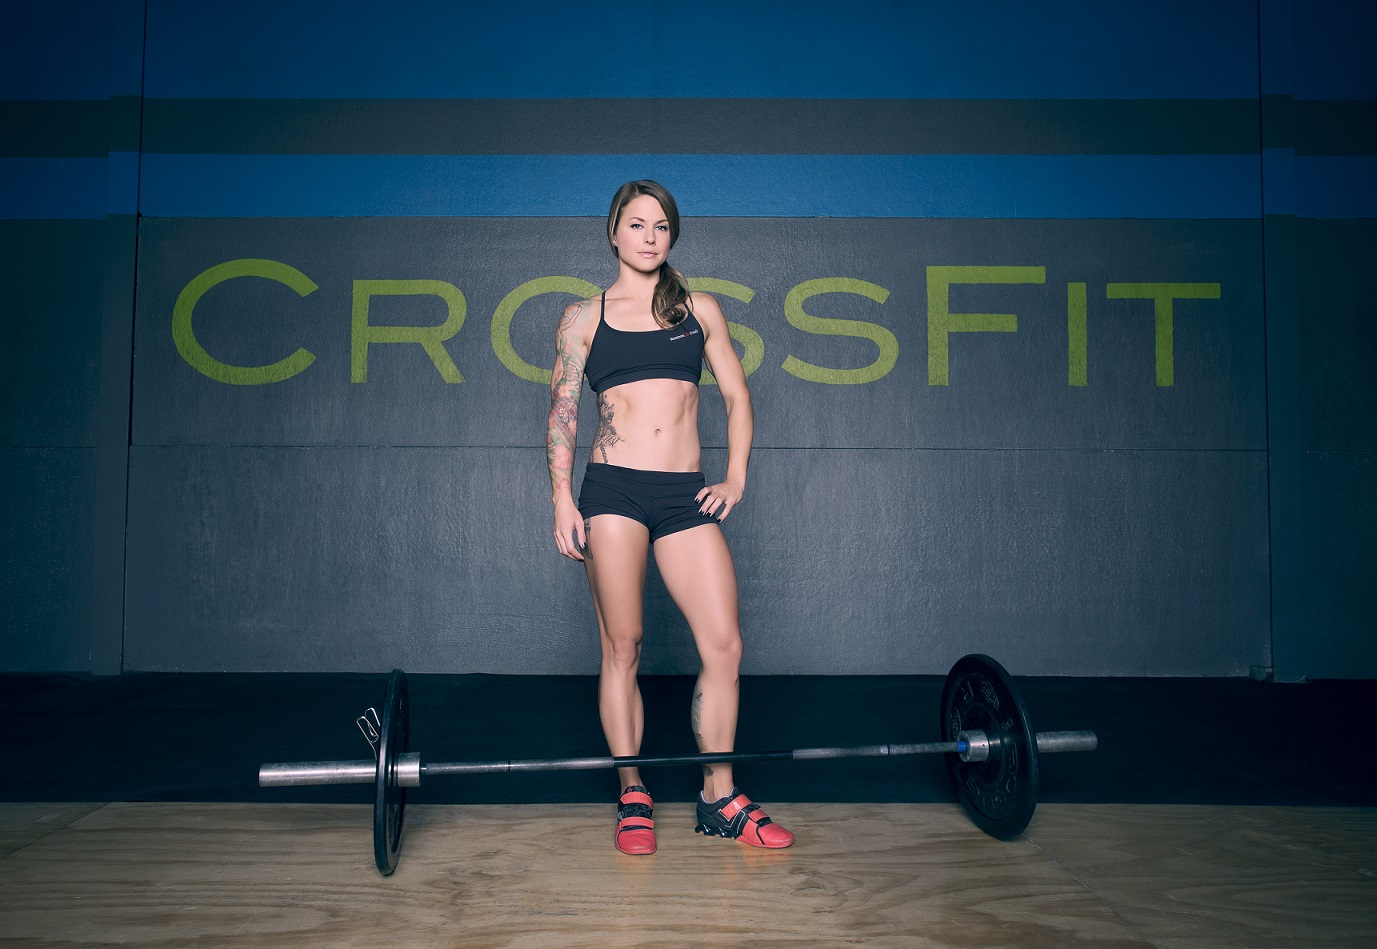 Christmas Abbot.Crossfit Icon Christmas Abbott S Journey From Front Line To